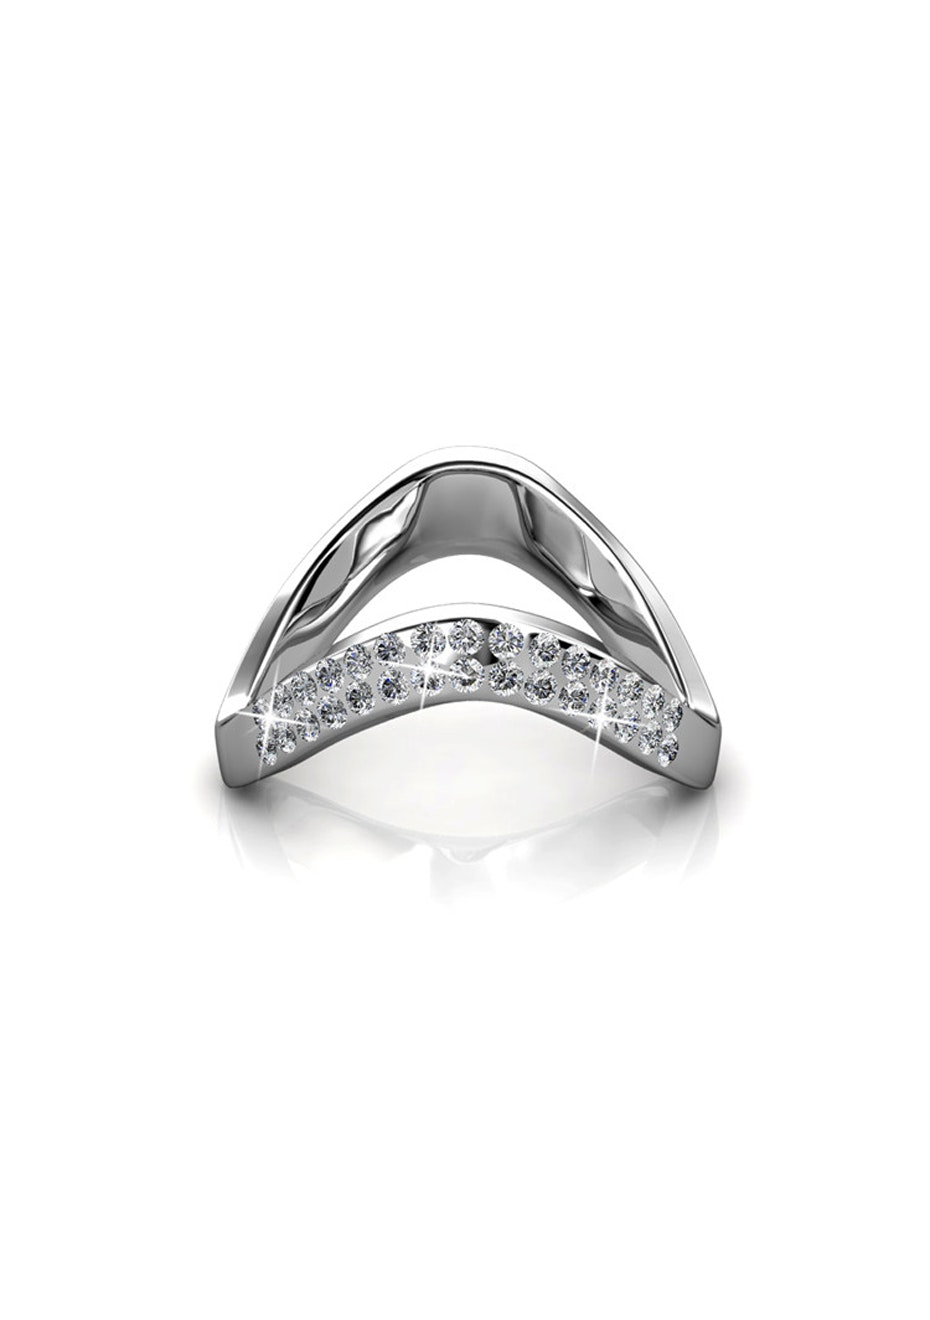 Bianca White Gold Ring Embellished with Crystals from Swarovski